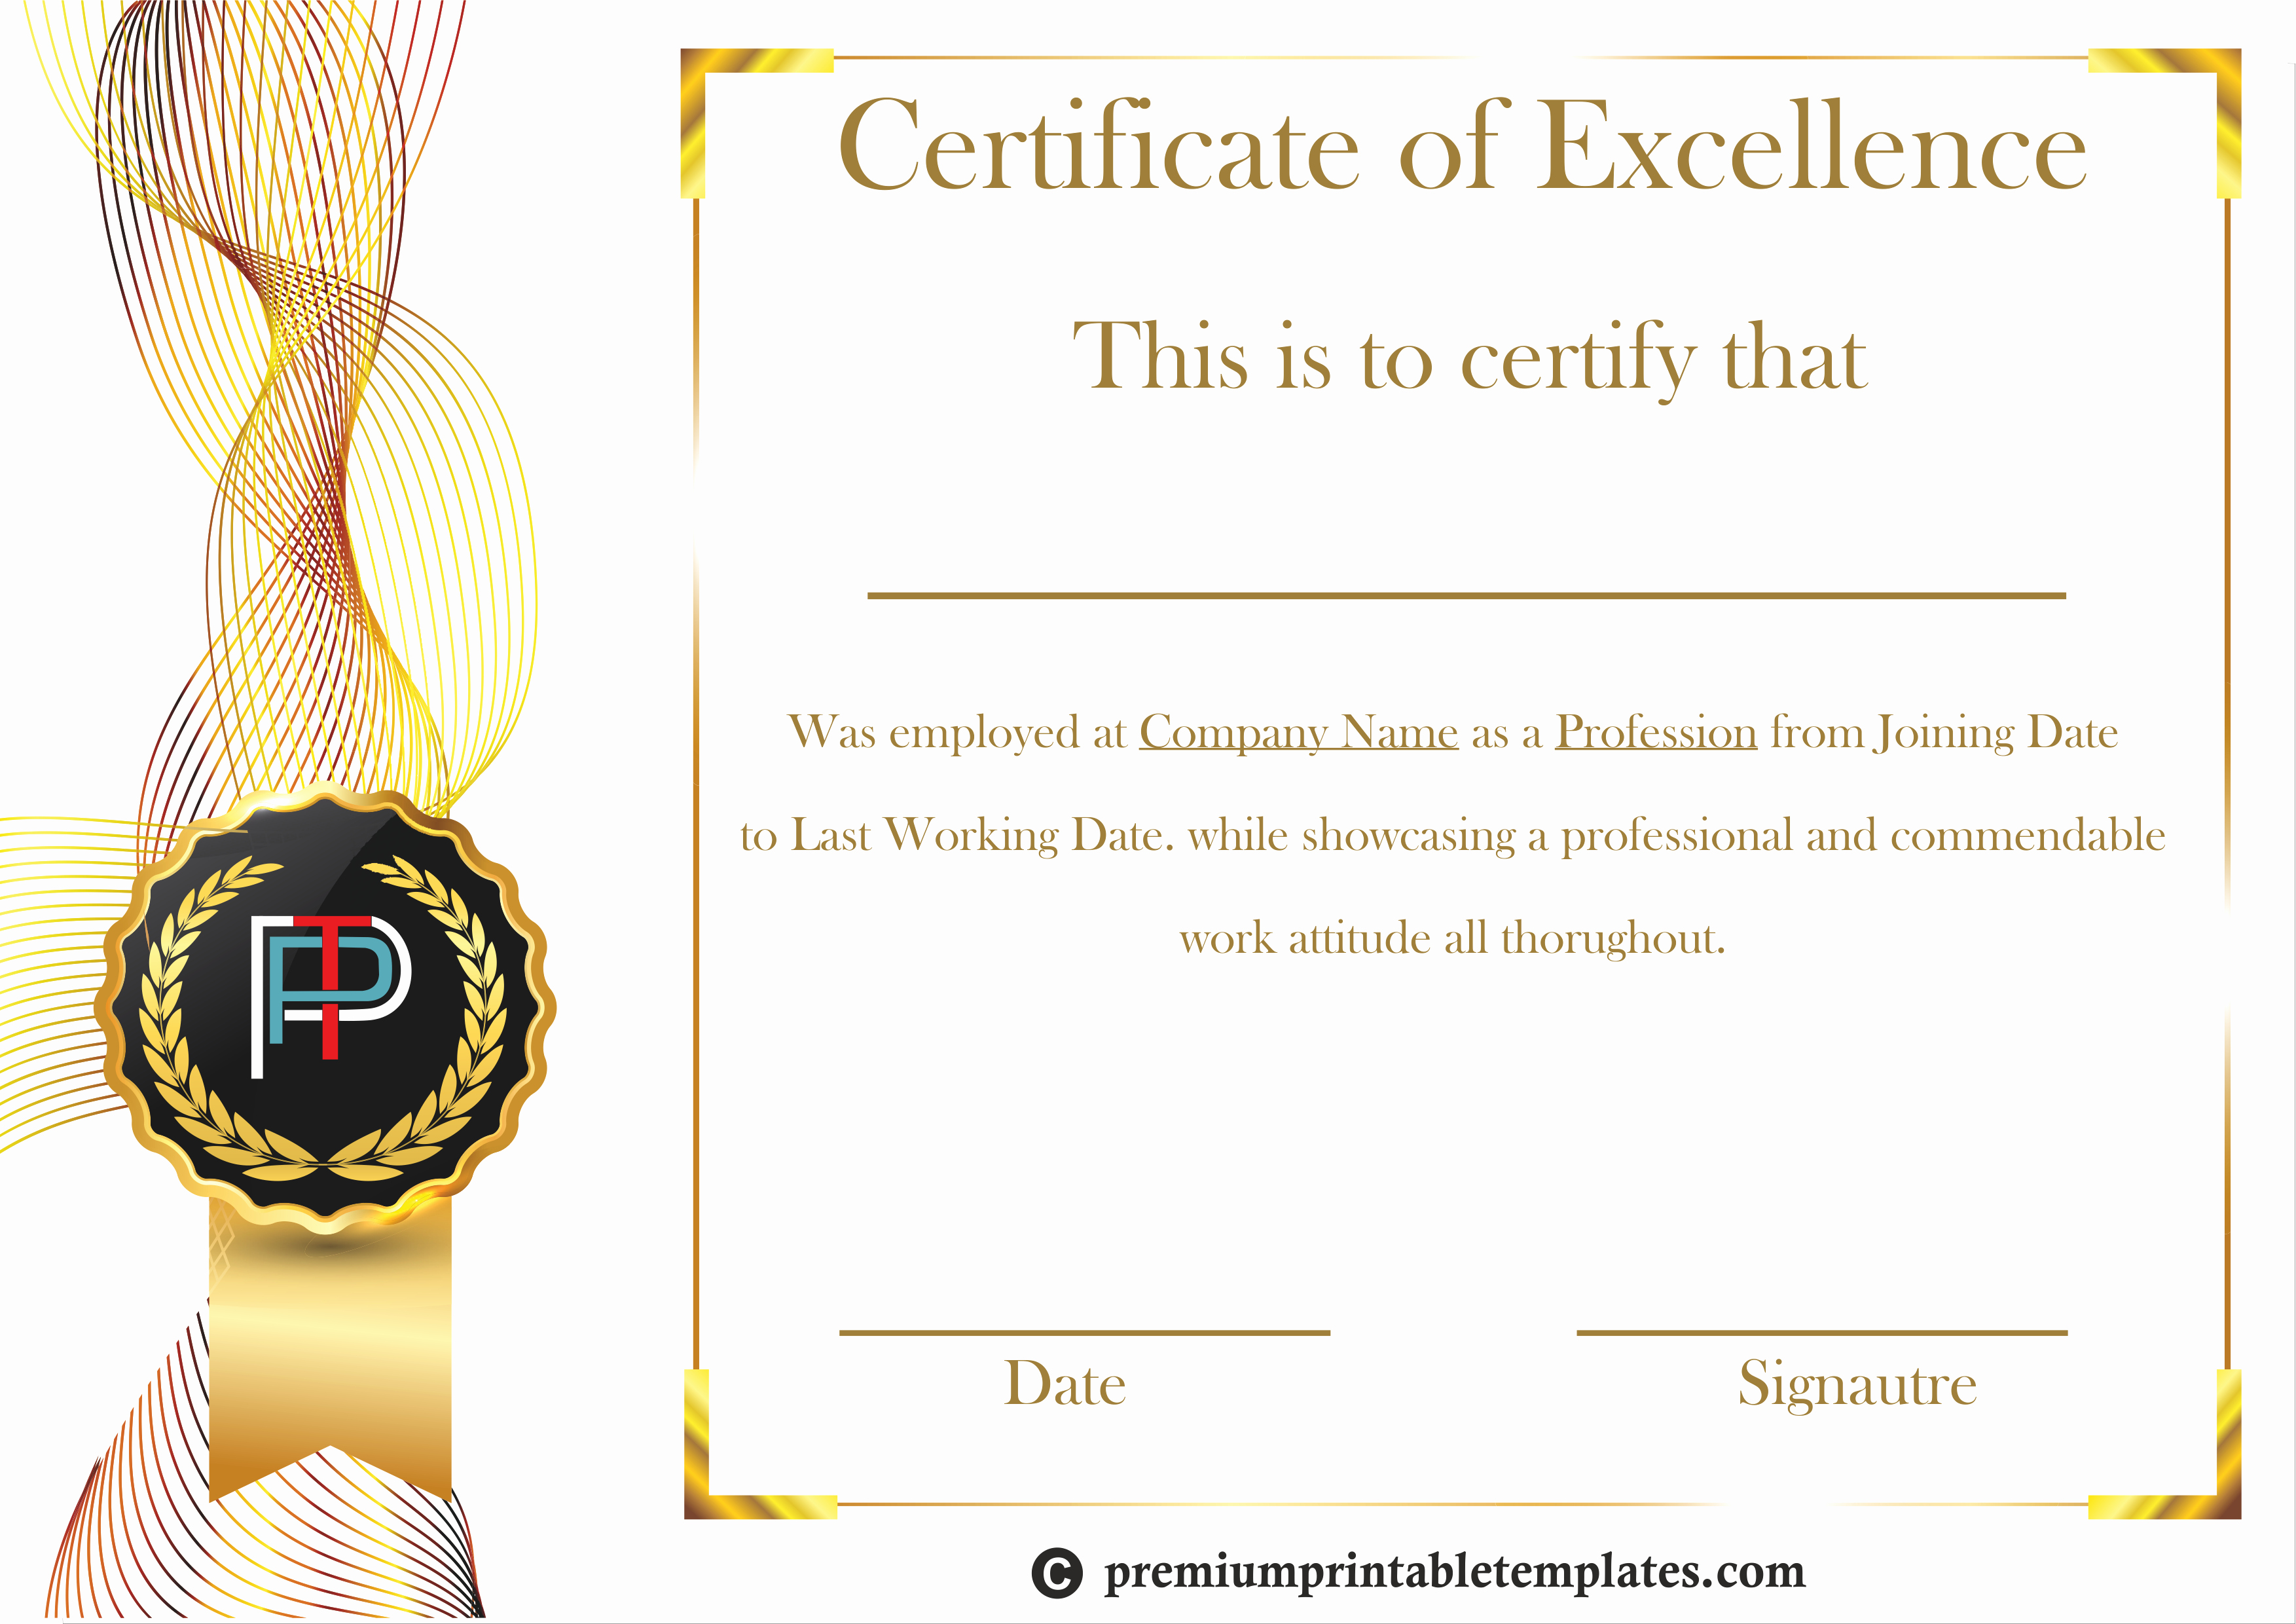 Certificate Of Excellence Template Best Of Certificate Of Excellence Template – Premium Printable